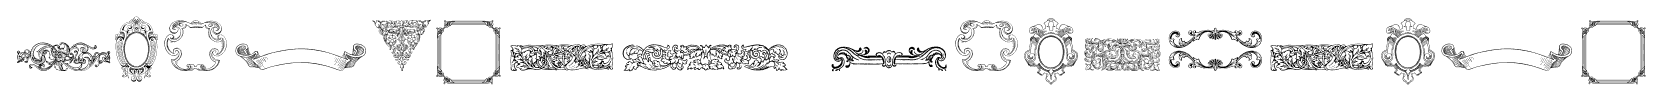 Mortised Ornaments font